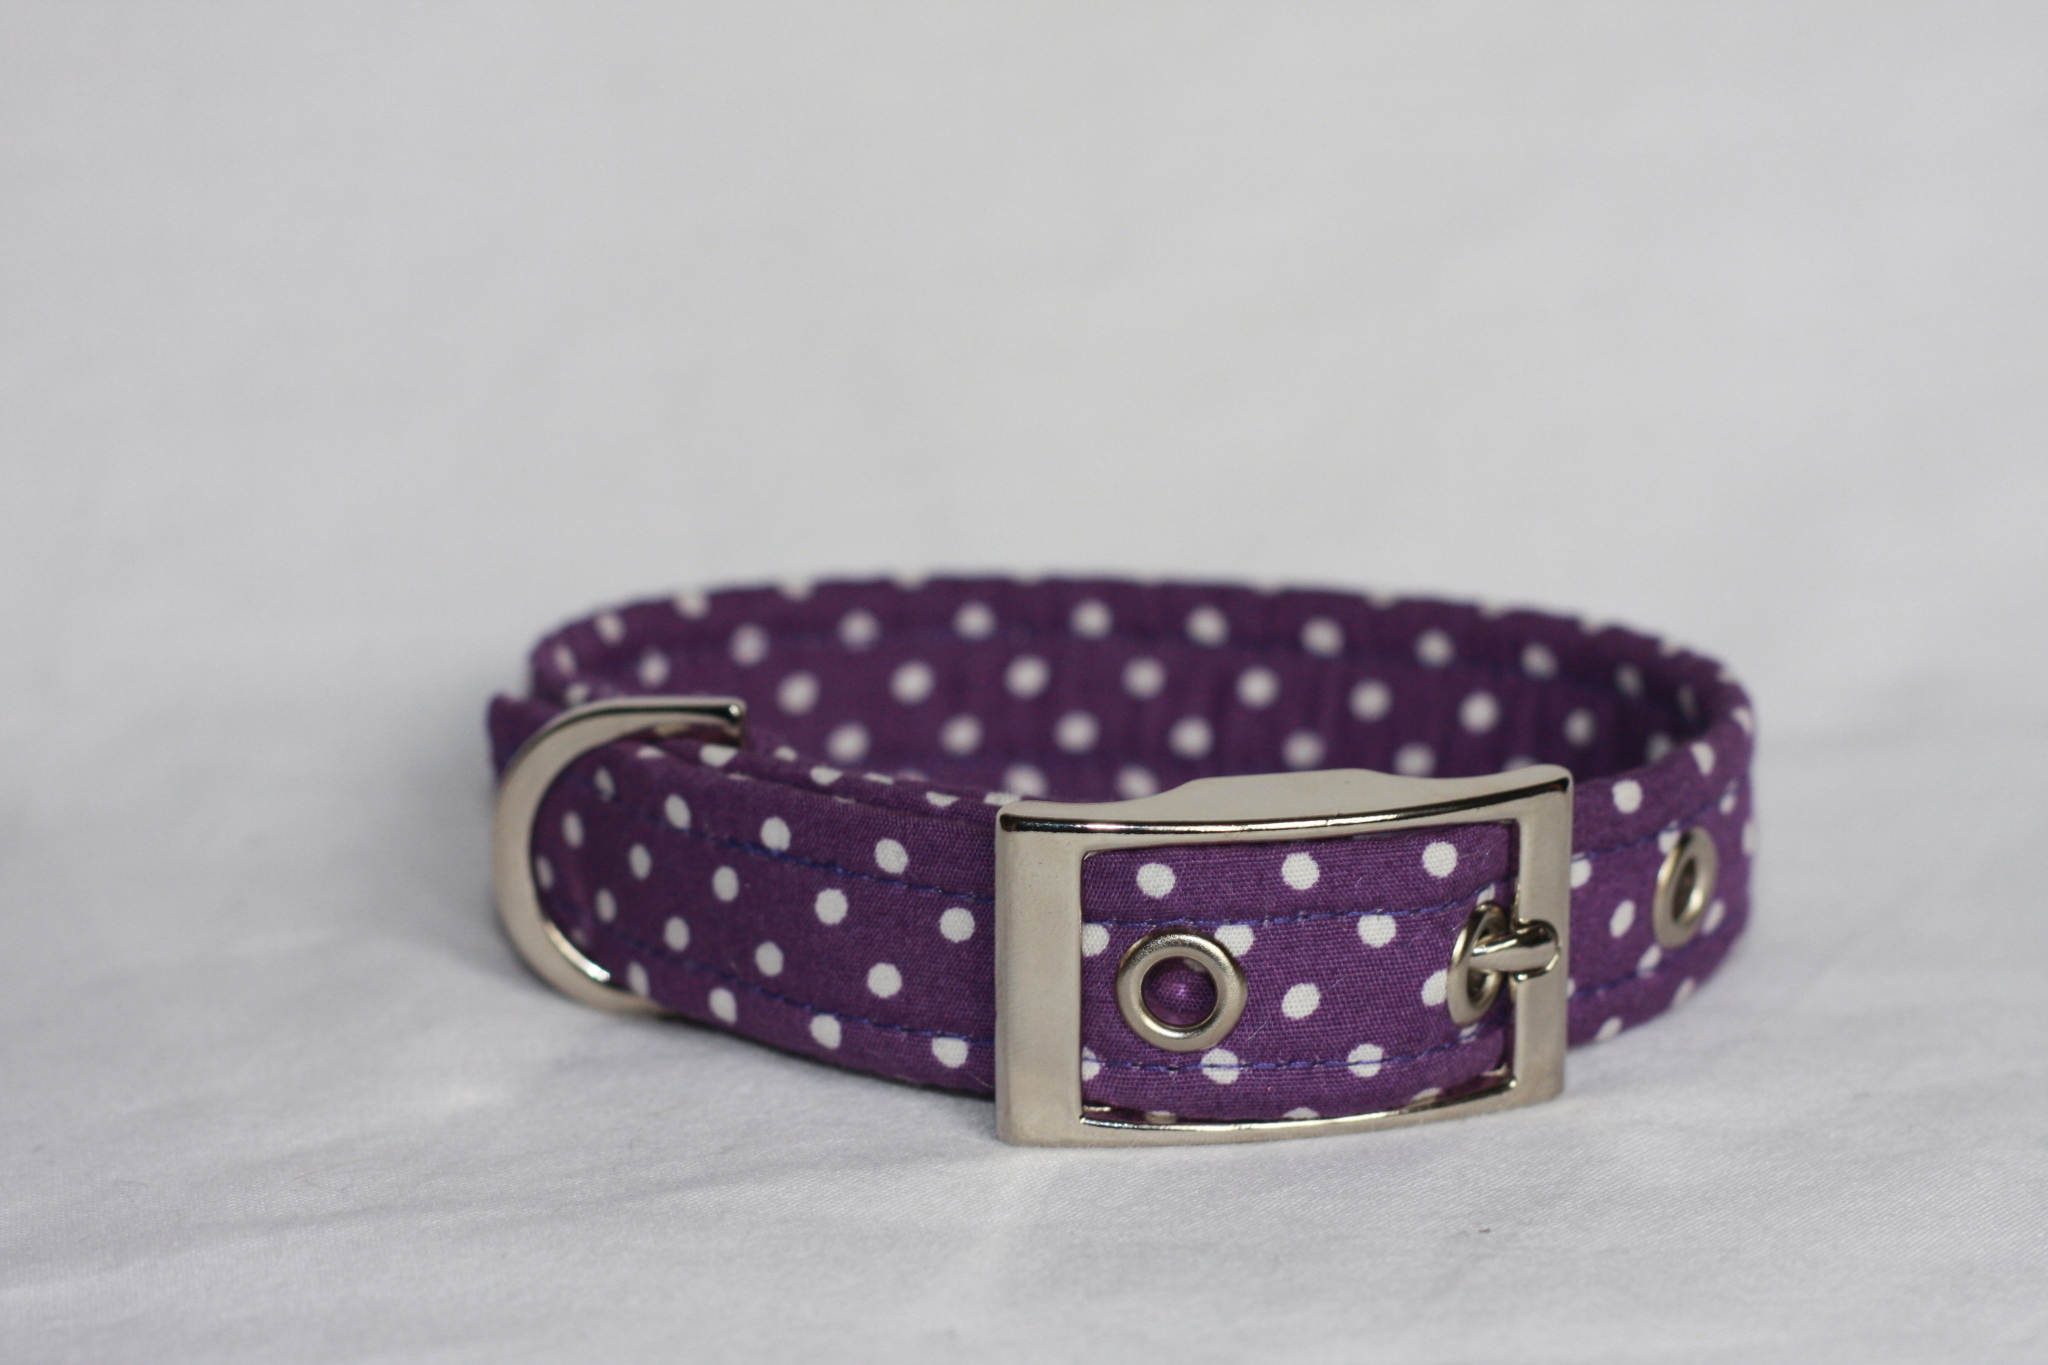 purple dog collar with white spots